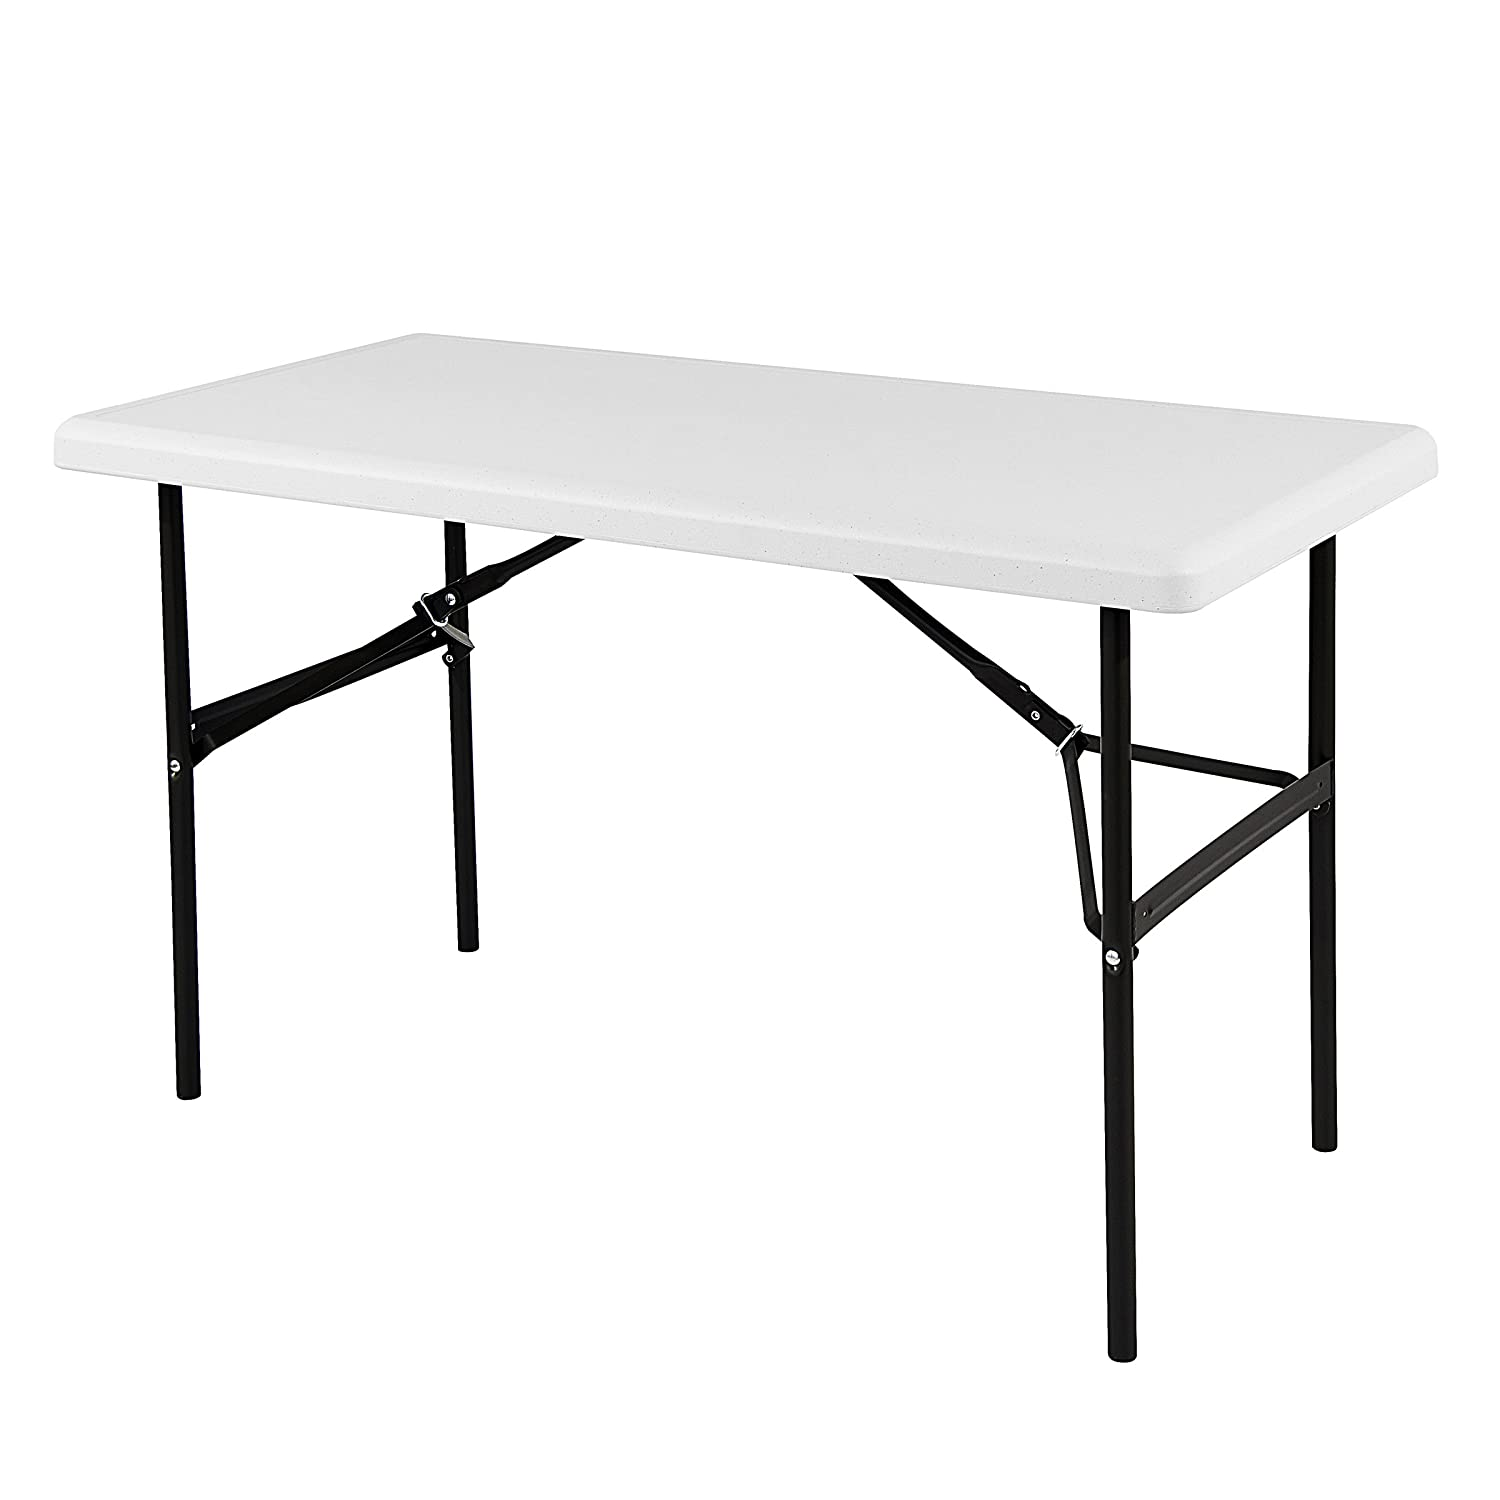 Iceberg 24 x 48 Folding Table, Platinum, IndestrucTable TOO 1200 Series MADE IN USA